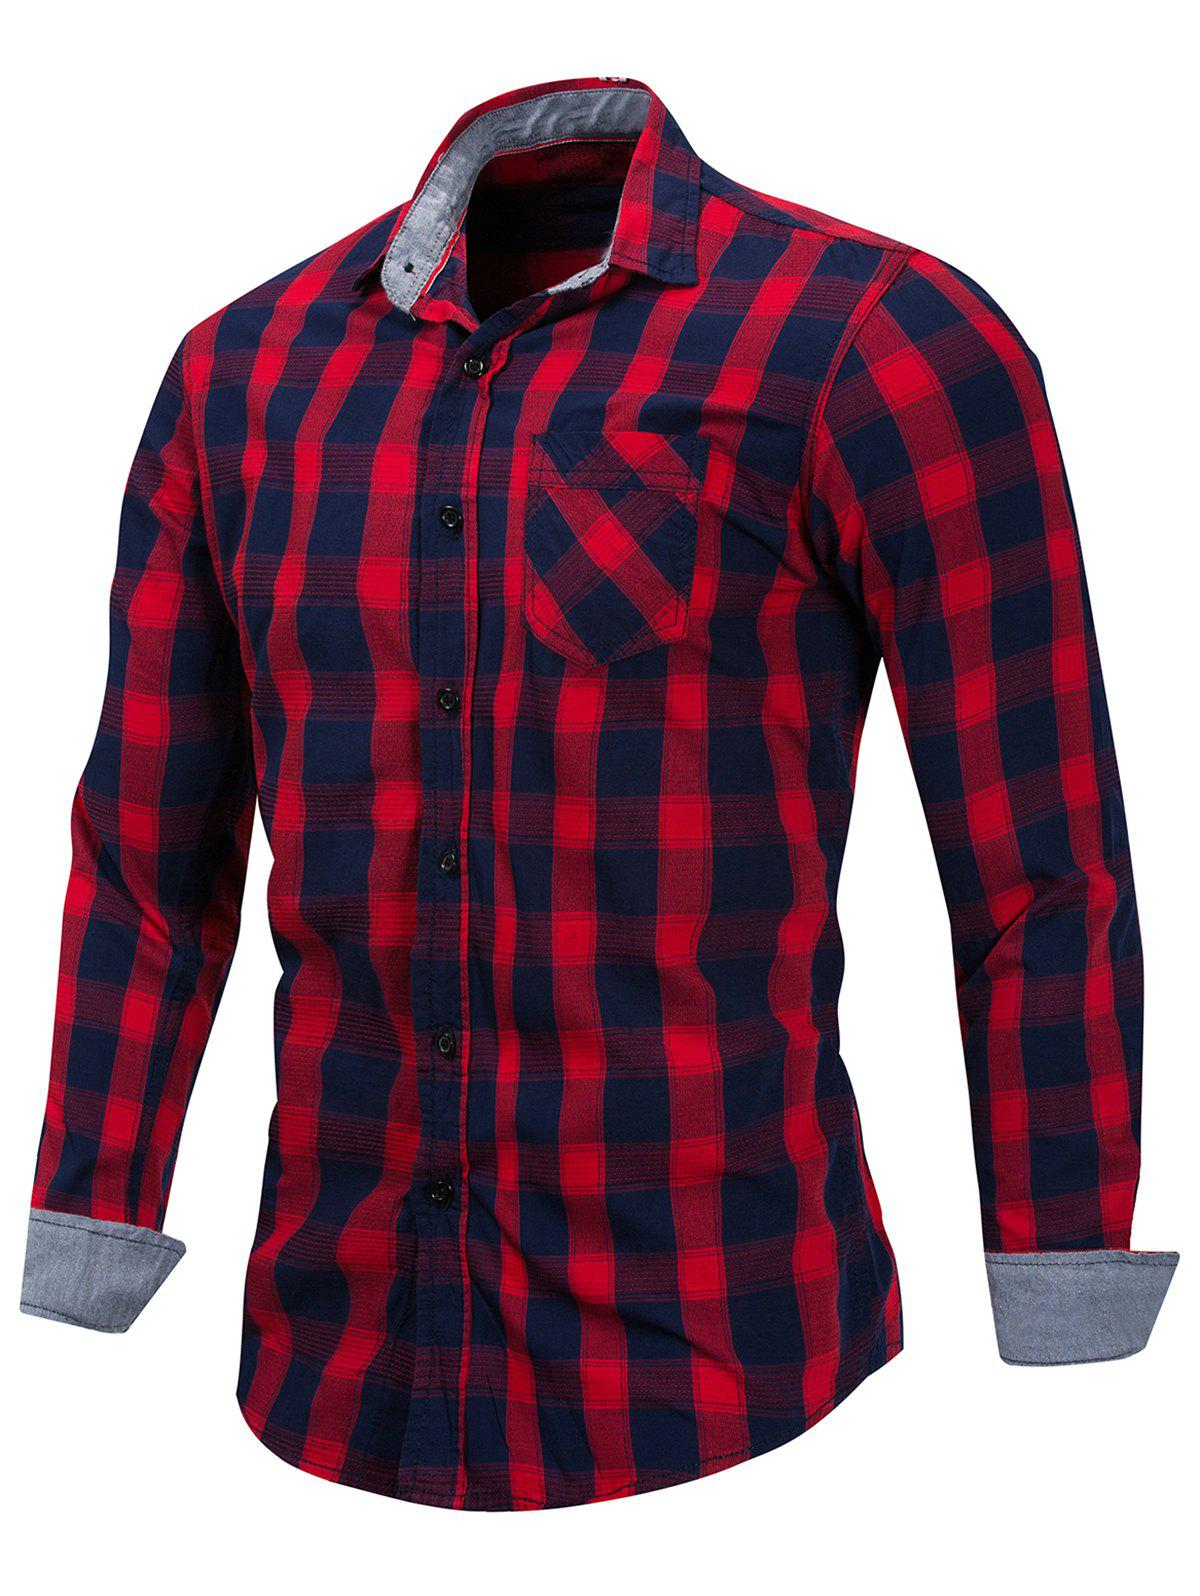 Hot Casual Checked Print Button Up Shirt